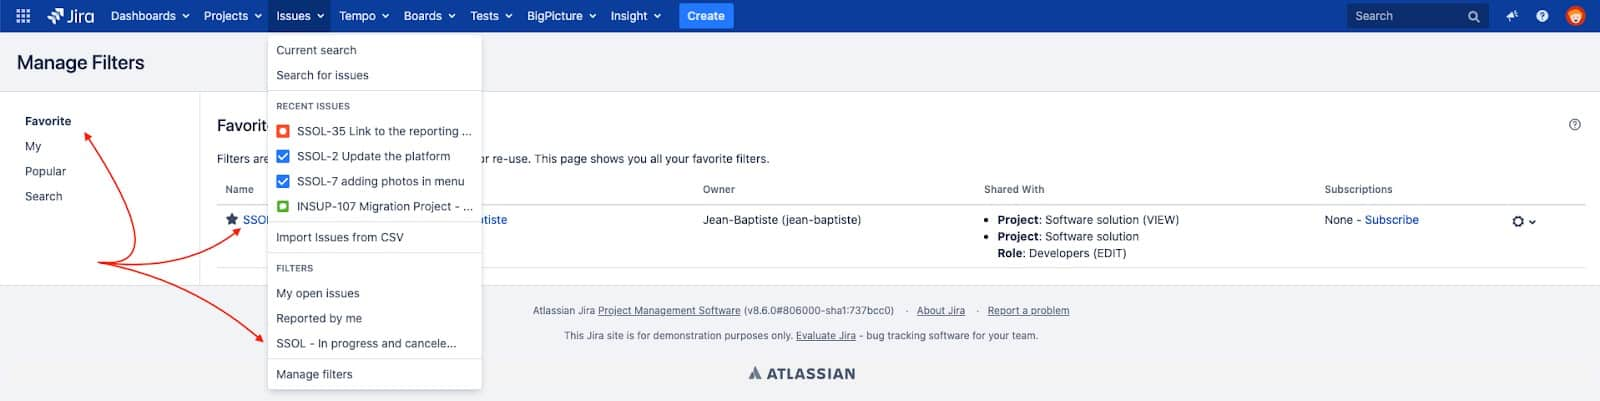 manage filters in jira